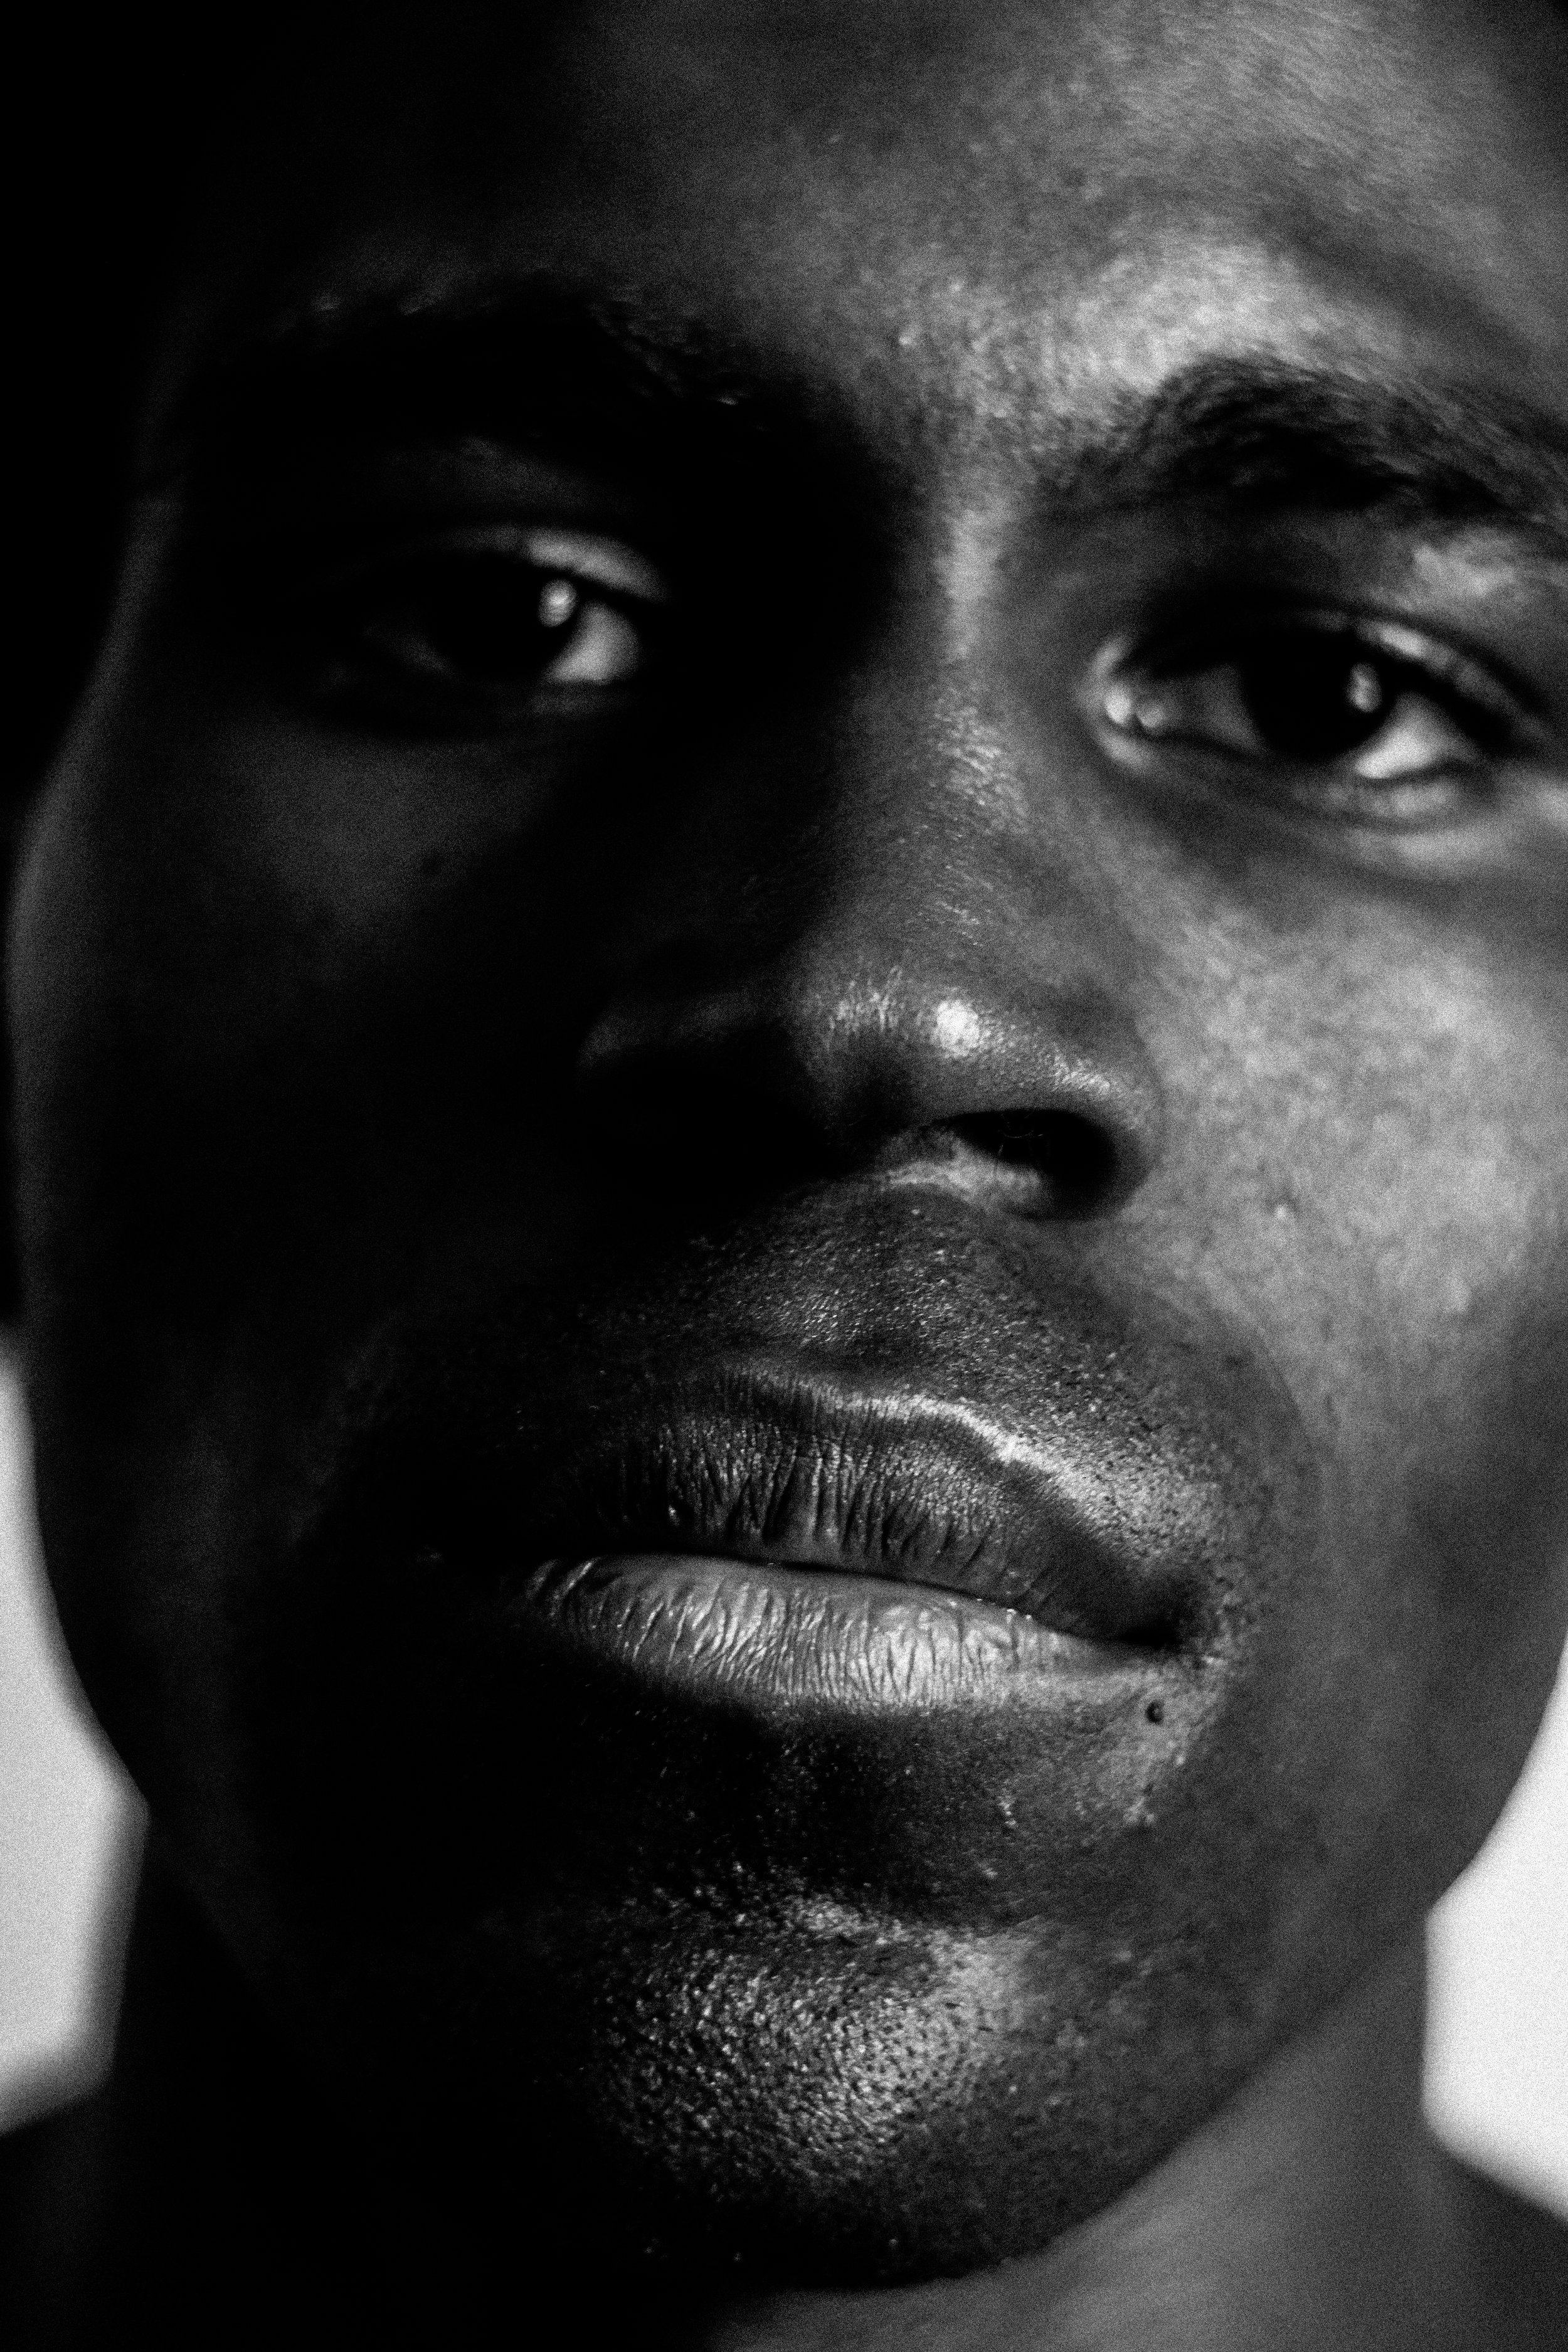 [Image Description: a black and white photograph of a black man's face, he stares straight ahead into the camera mouth closed]